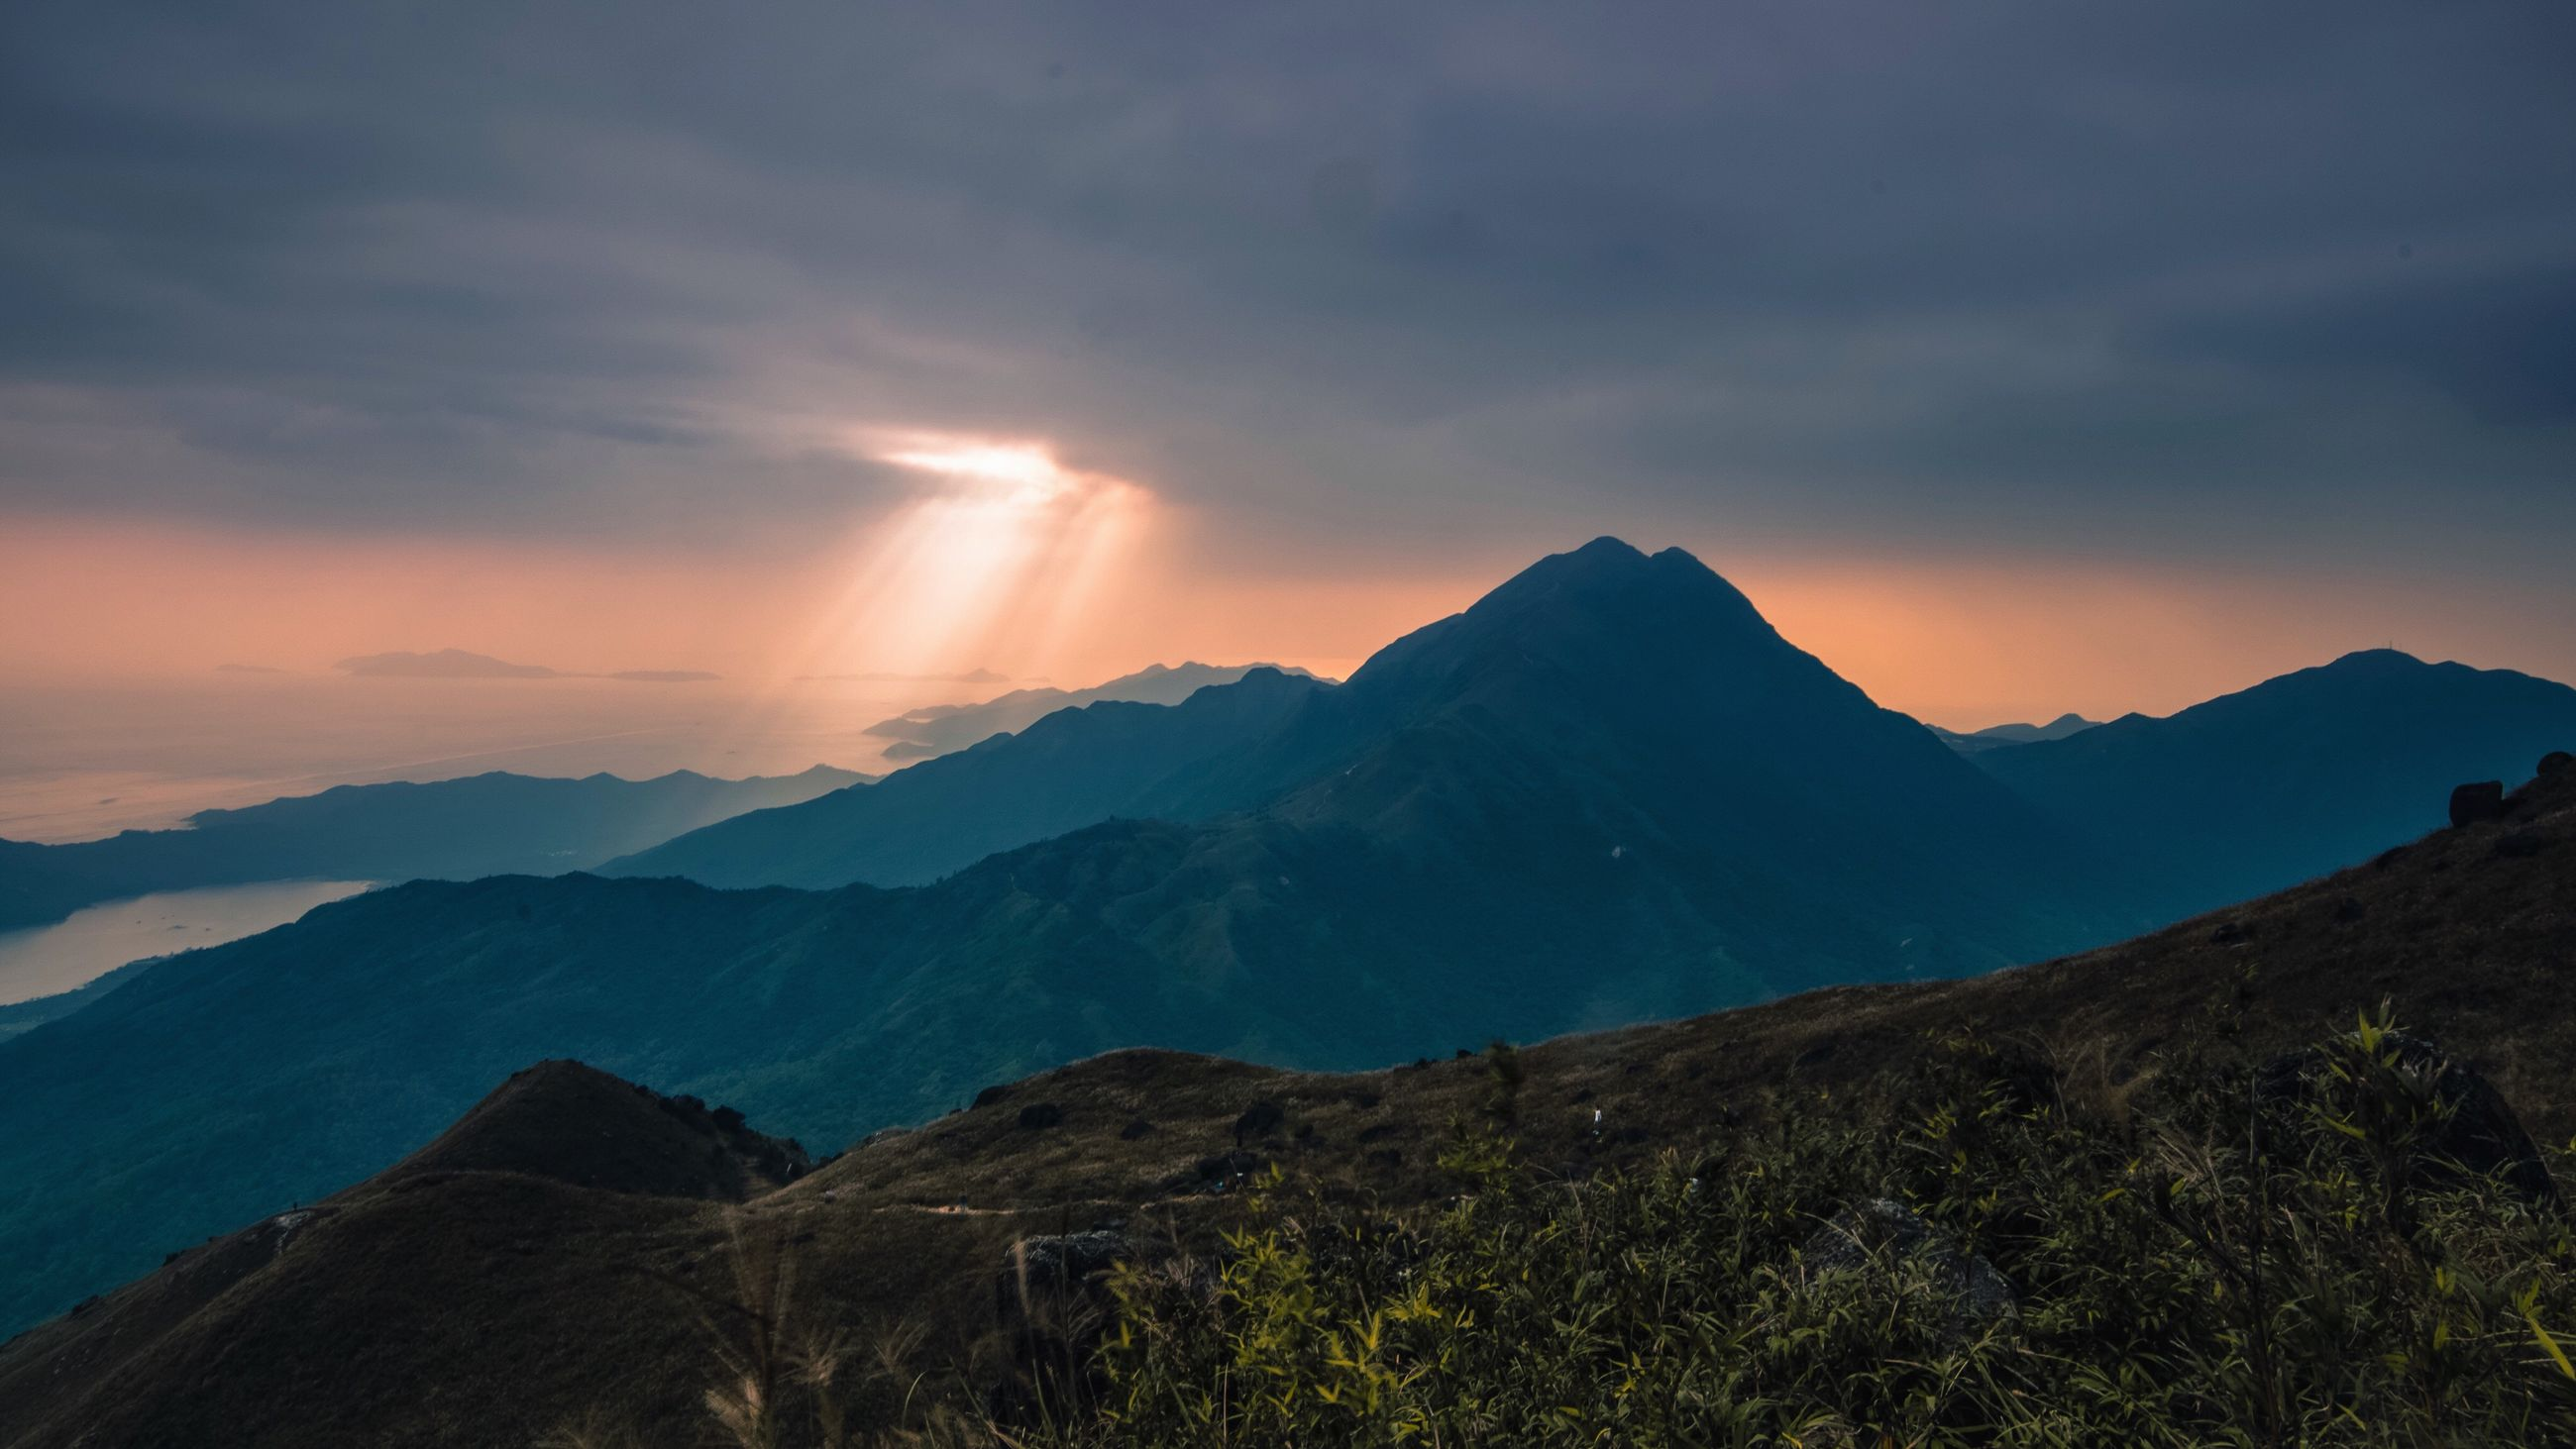 mountain range, mountain, sunset, night, dramatic sky, beauty in nature, space and astronomy, cloud - sky, mountain peak, landscape, sky, tranquil scene, nature, outdoors, scenics, no people, milky way, astronomy, galaxy